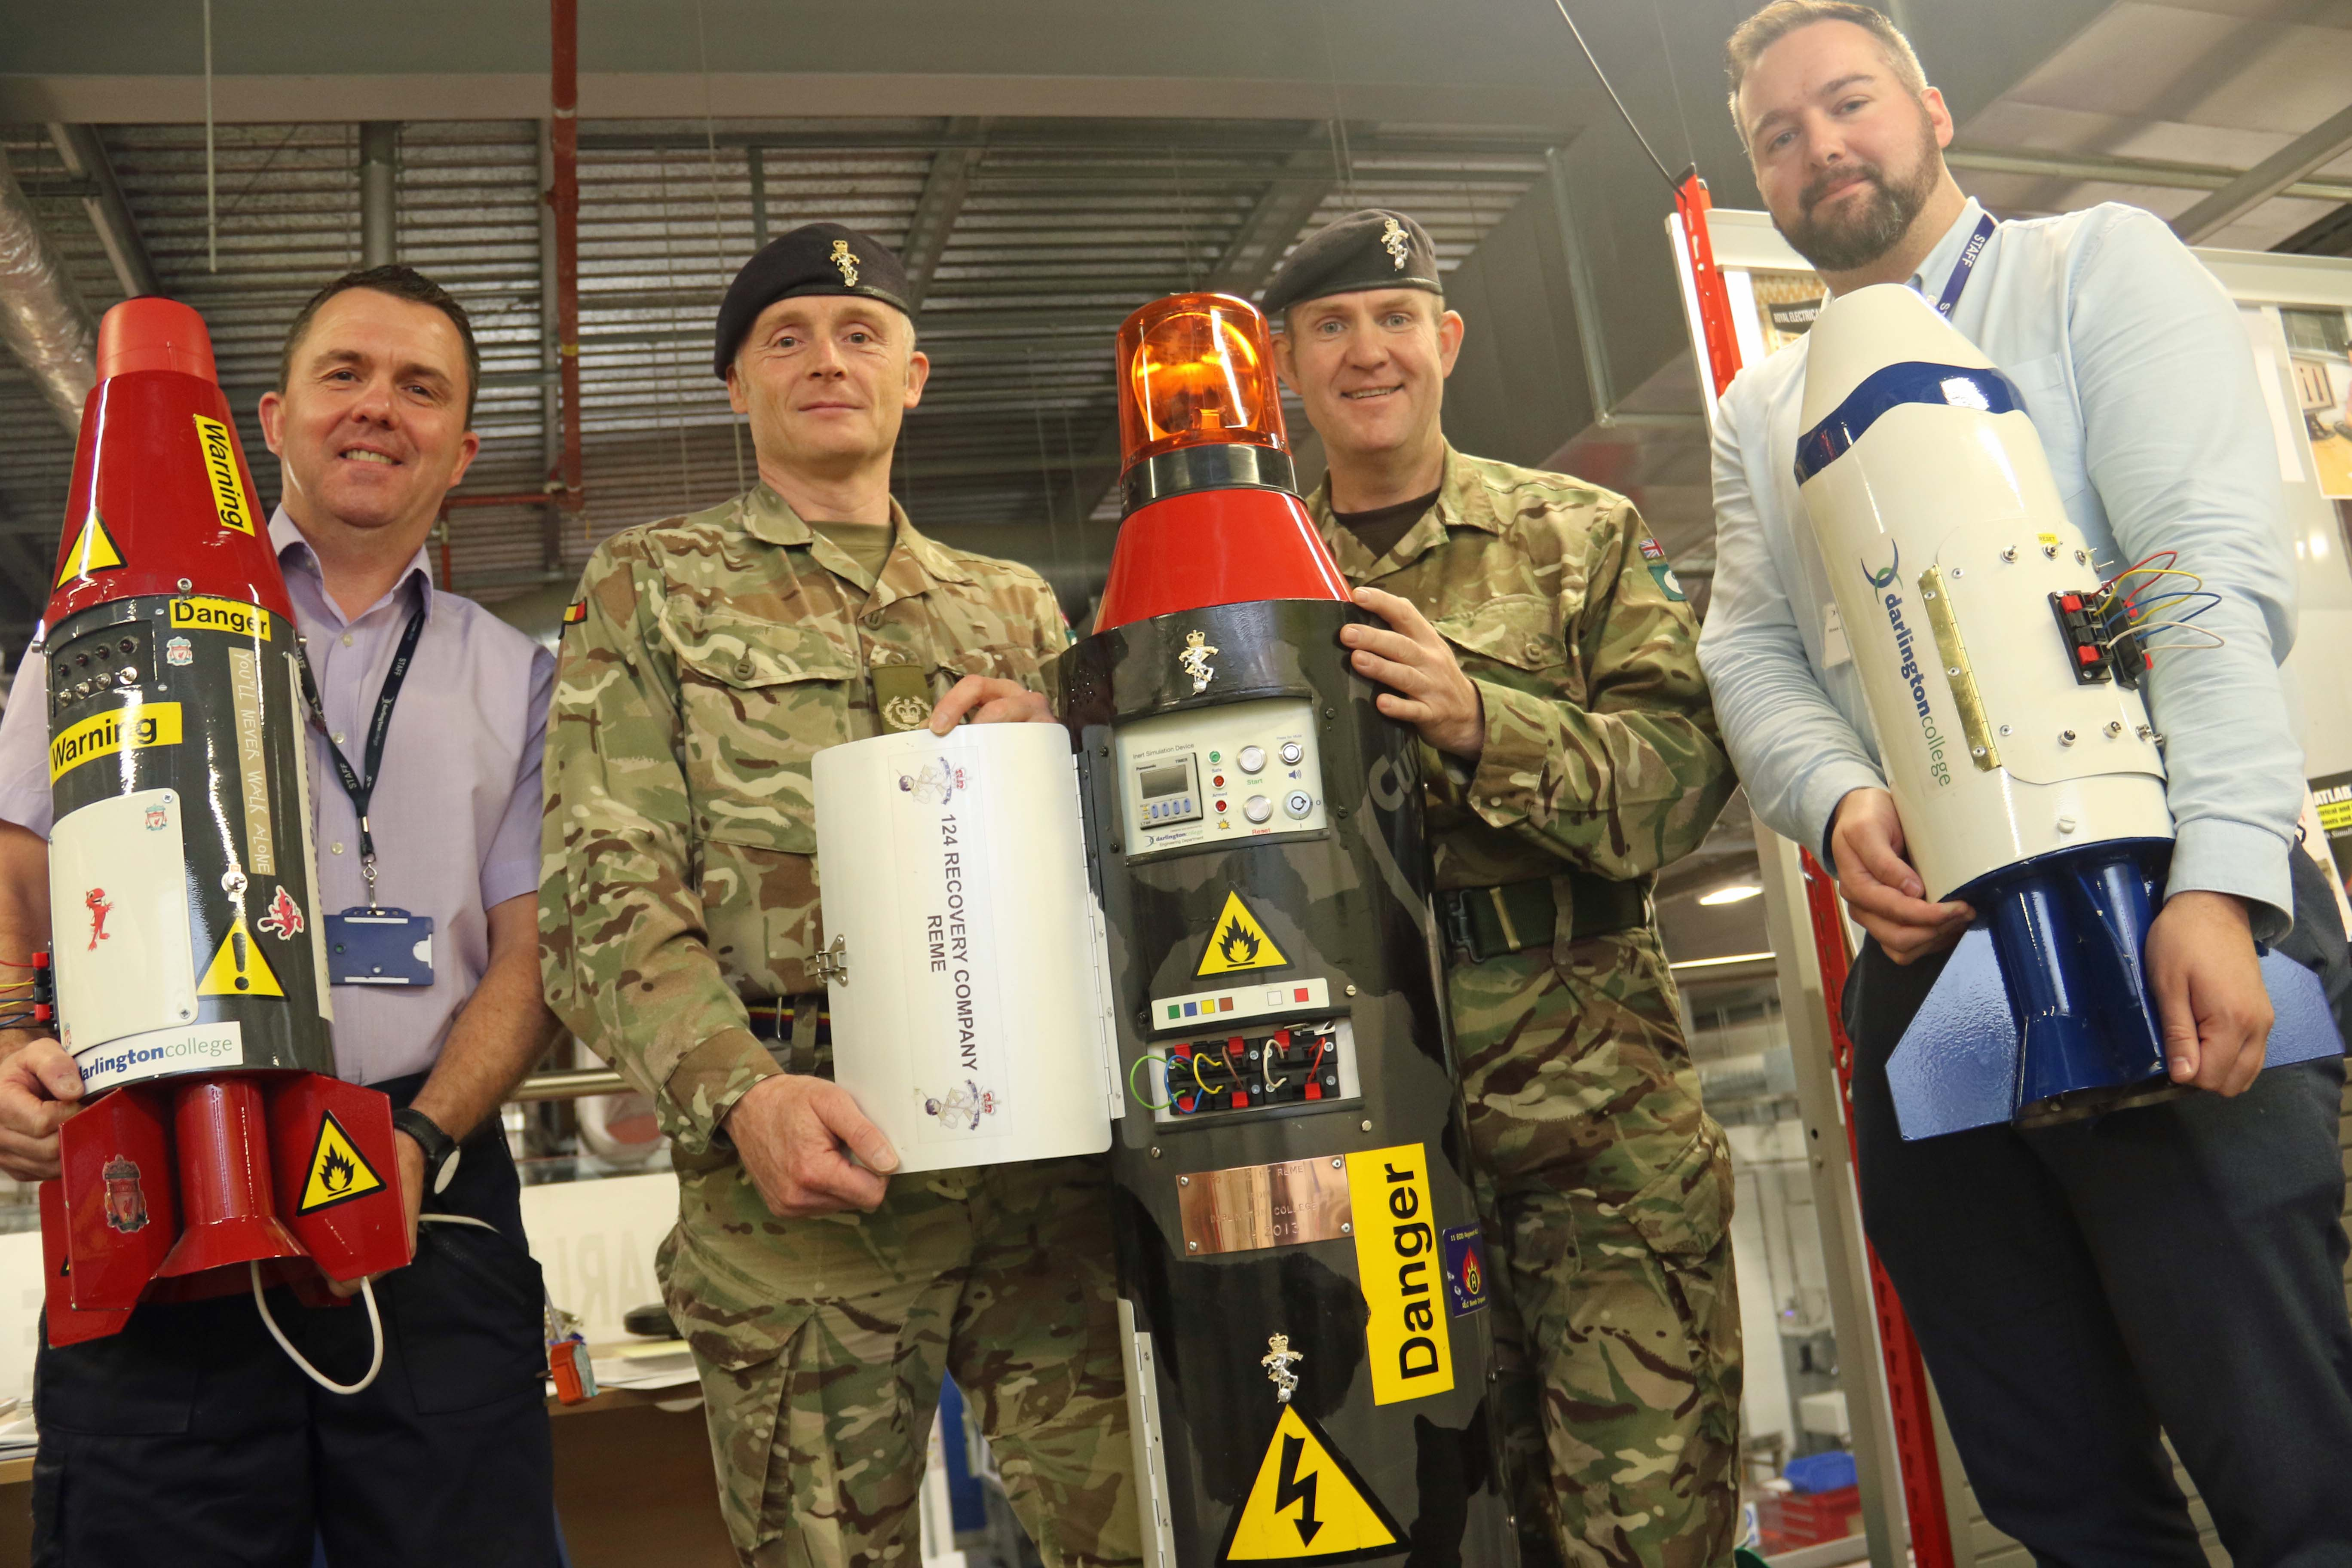 Army Rocket Launches New Careers